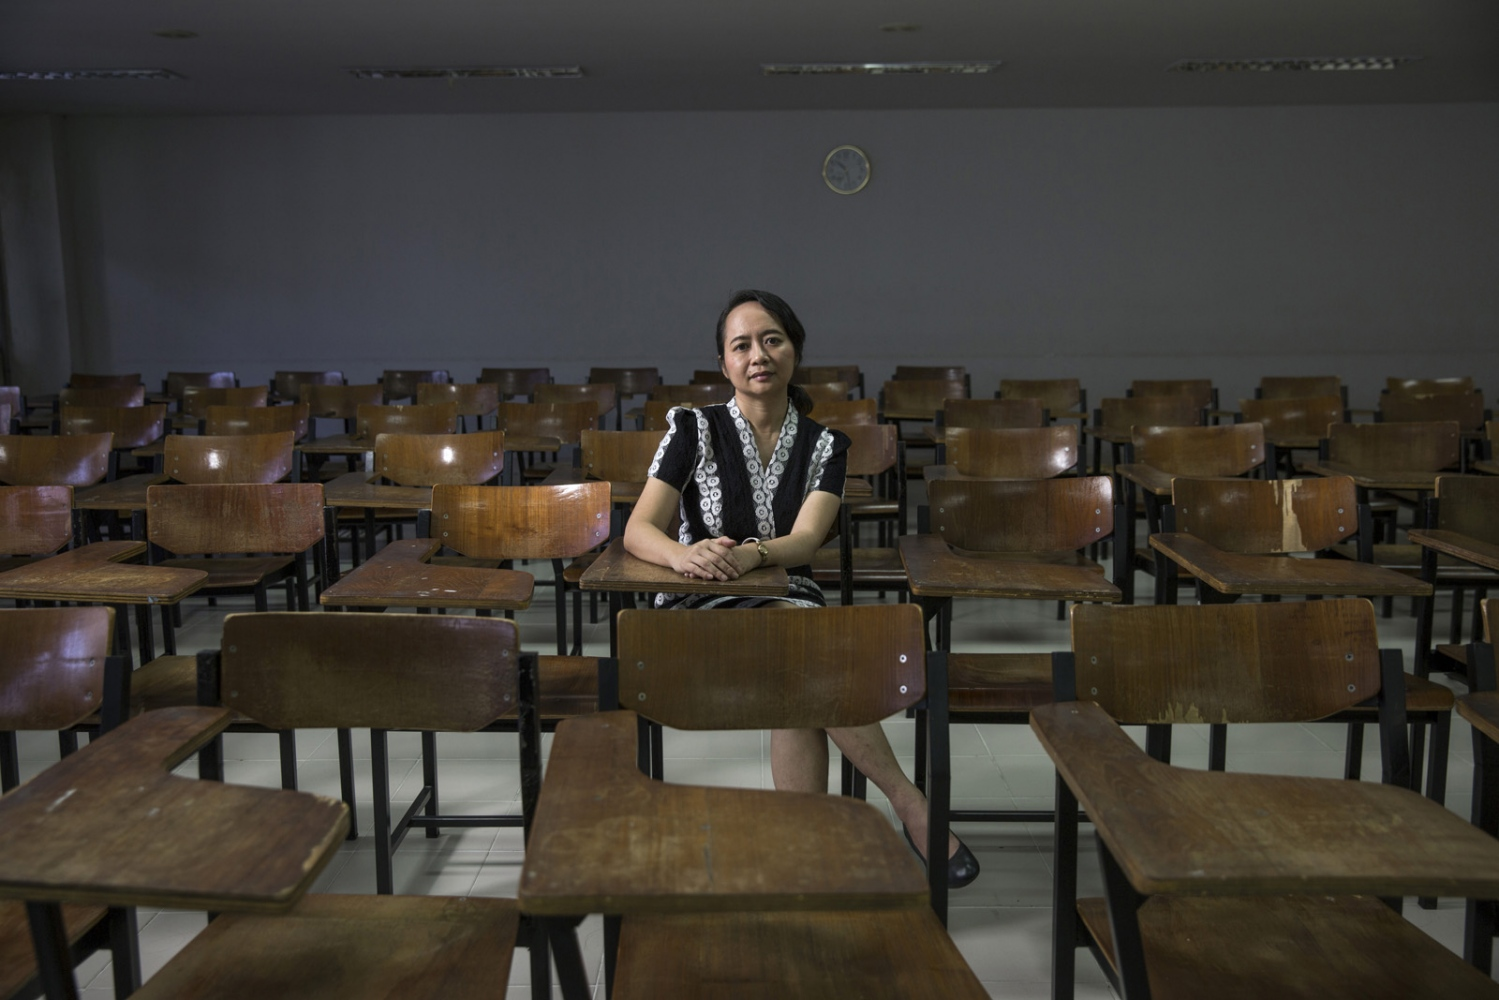 Chalita Bundhuwong, in one of her lecture rooms at Kasetsart University, where she is a professor of Social Science. She has been part of an effort to organize public discussions, lectures and lead campaigns to assist students in understanding the concept of human rights. She is also the Coordinator of the Academic Network for Civil Rights (TANC). Bangkok, Thailand